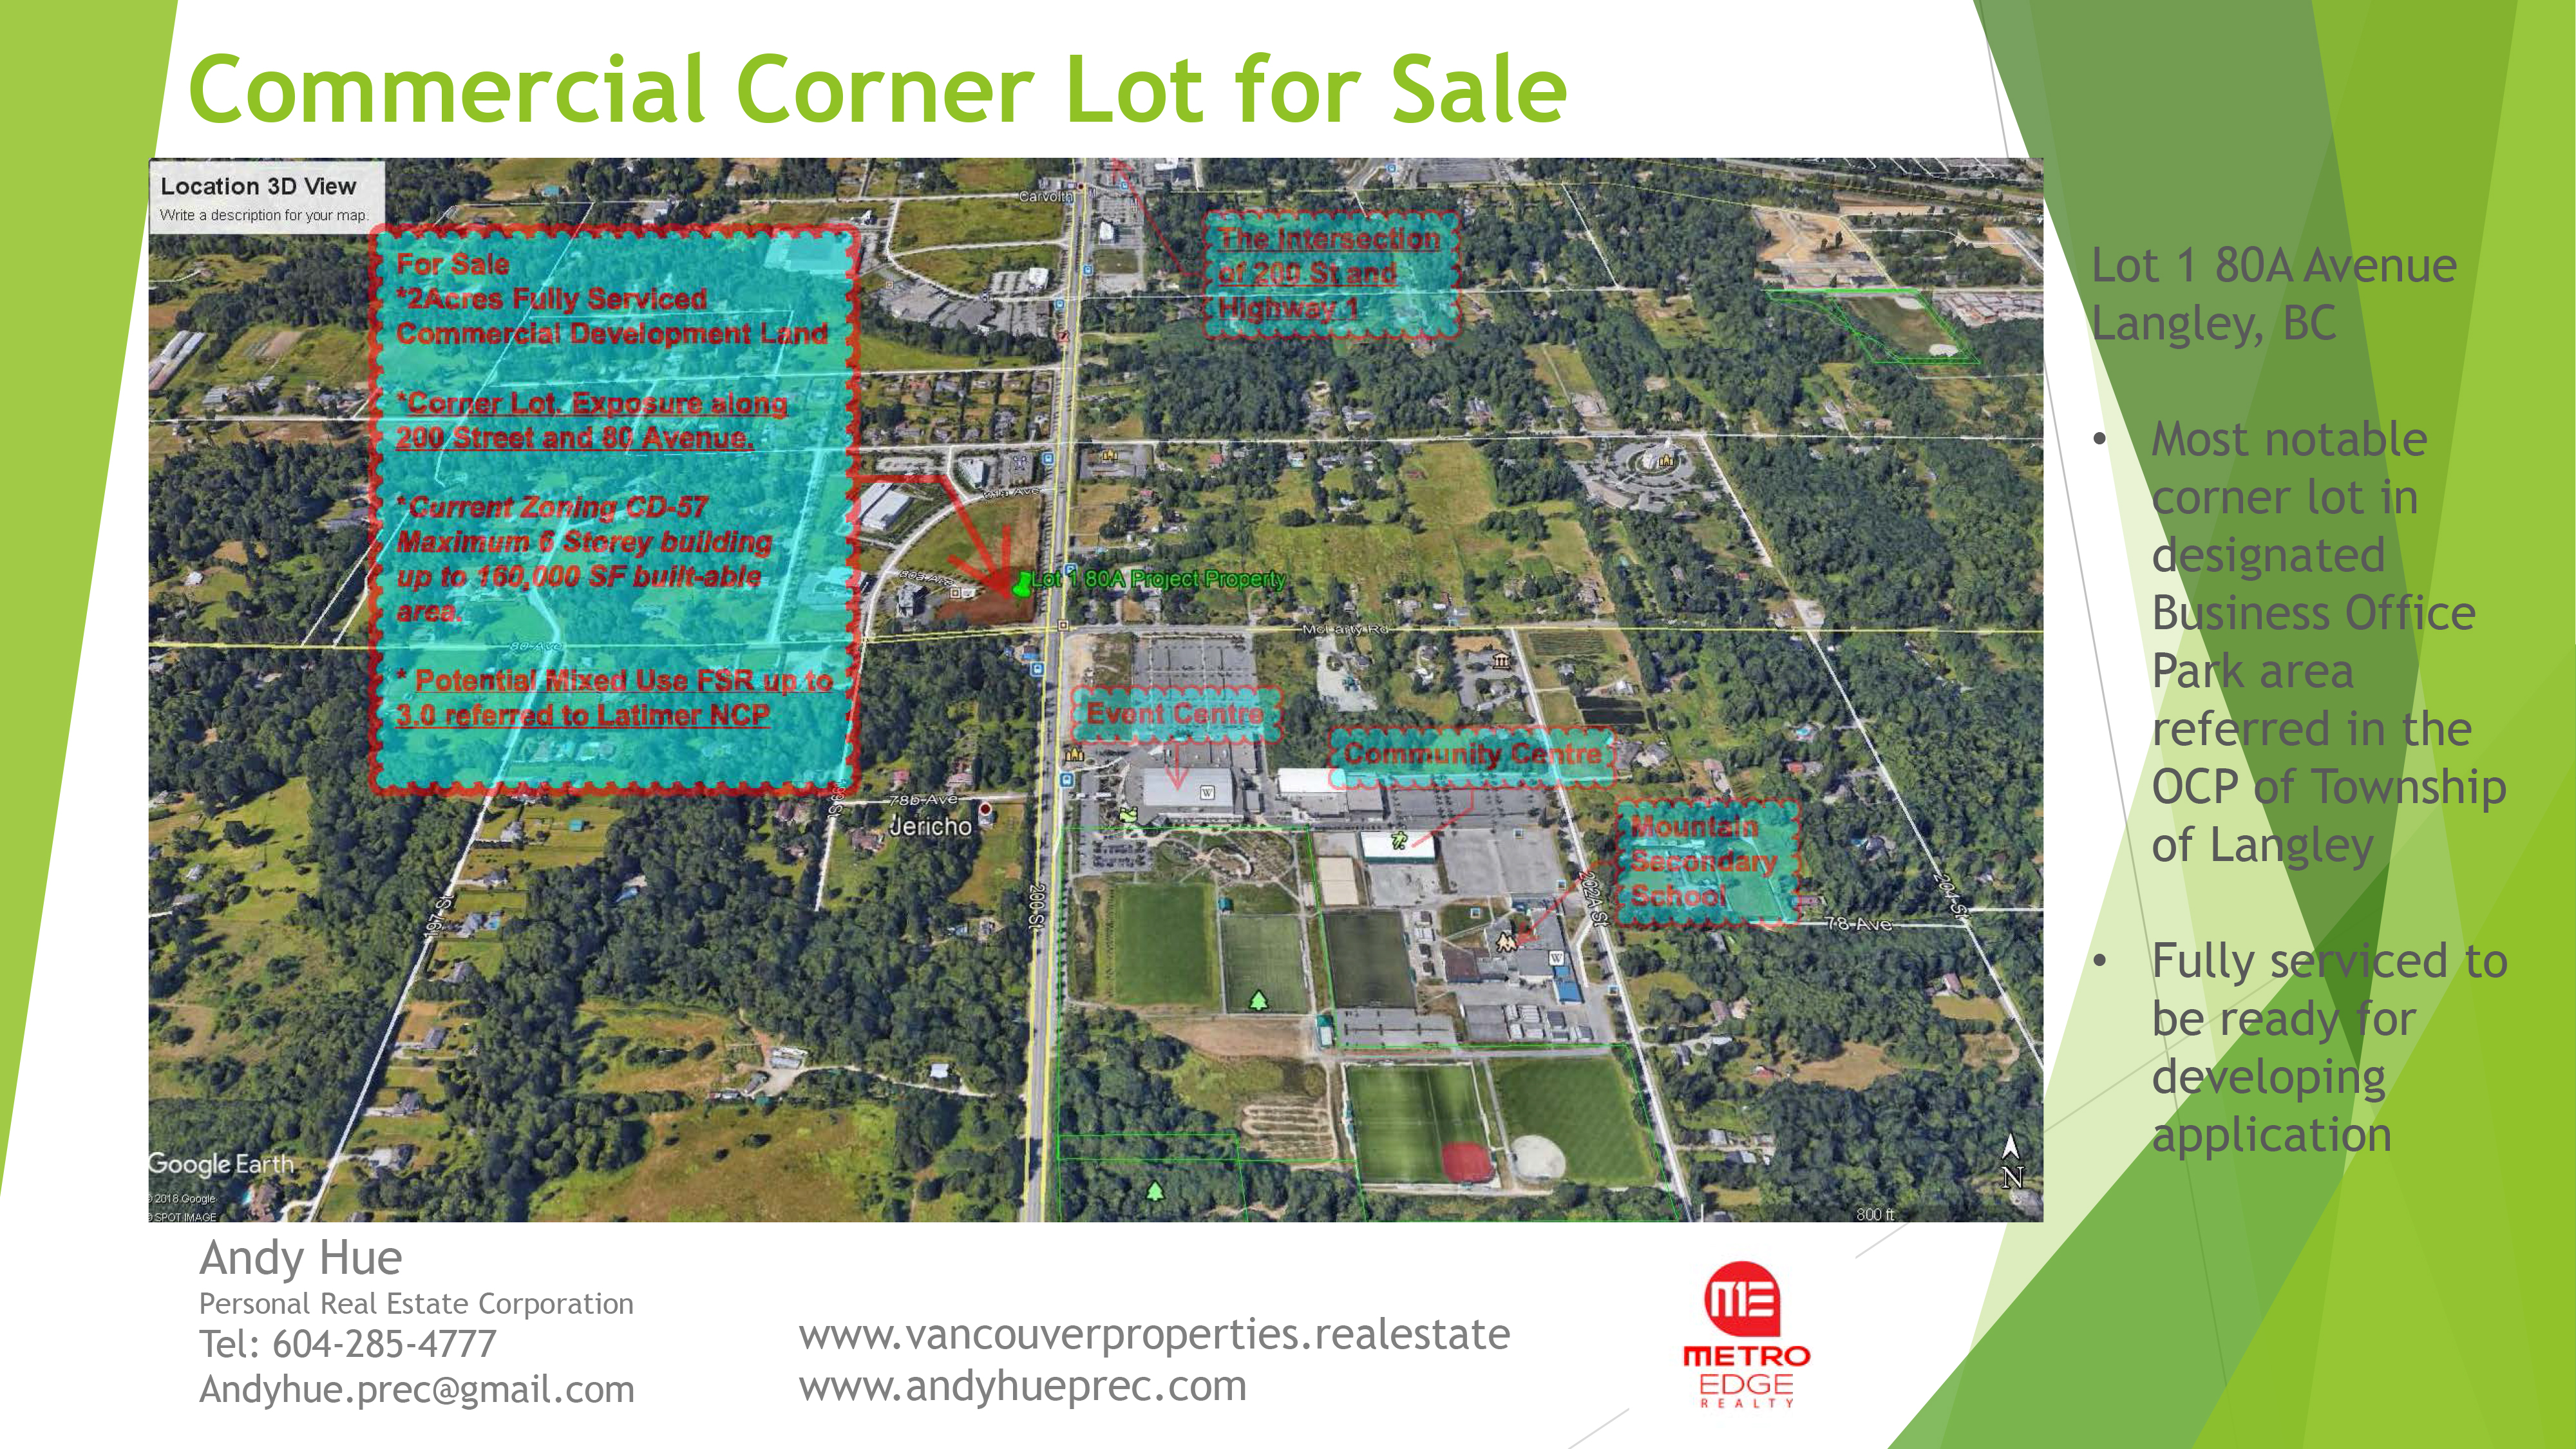 Commercial Corner Lot for Sale 19-1